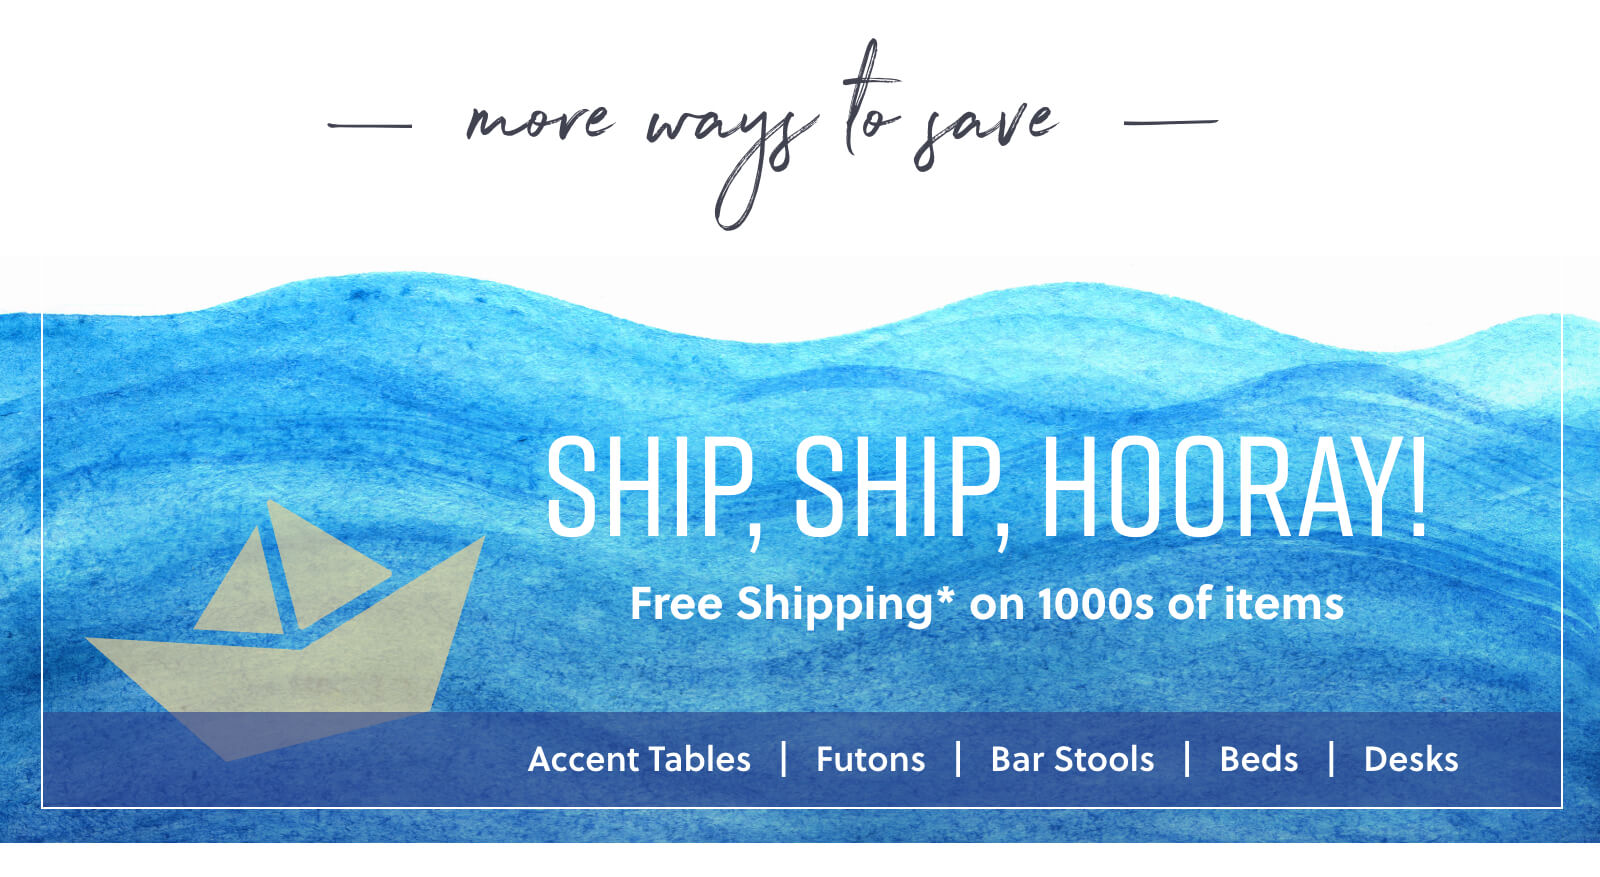 Free Shipping Accent Tables, Futons, Barstools, Beds, Desks